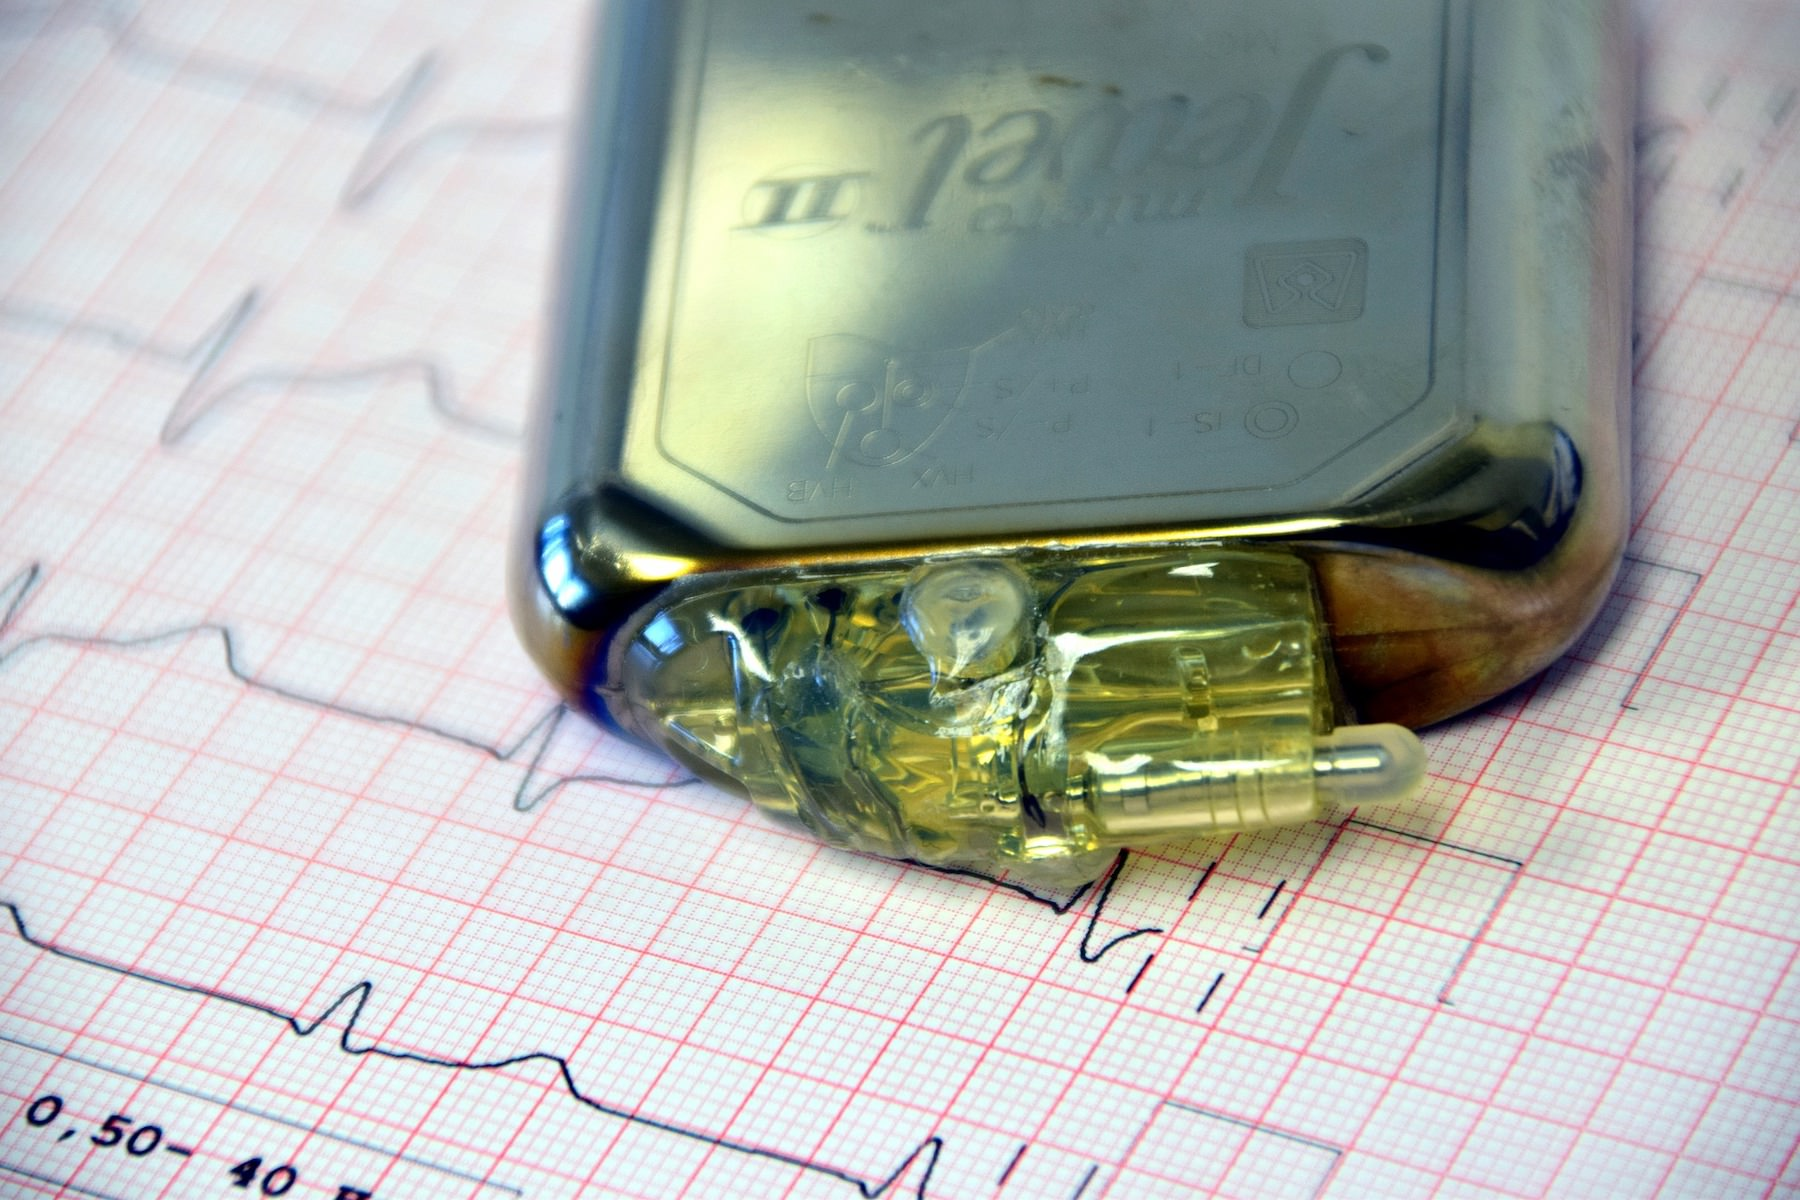 Why Medical Devices Have to be Removed for Cremation